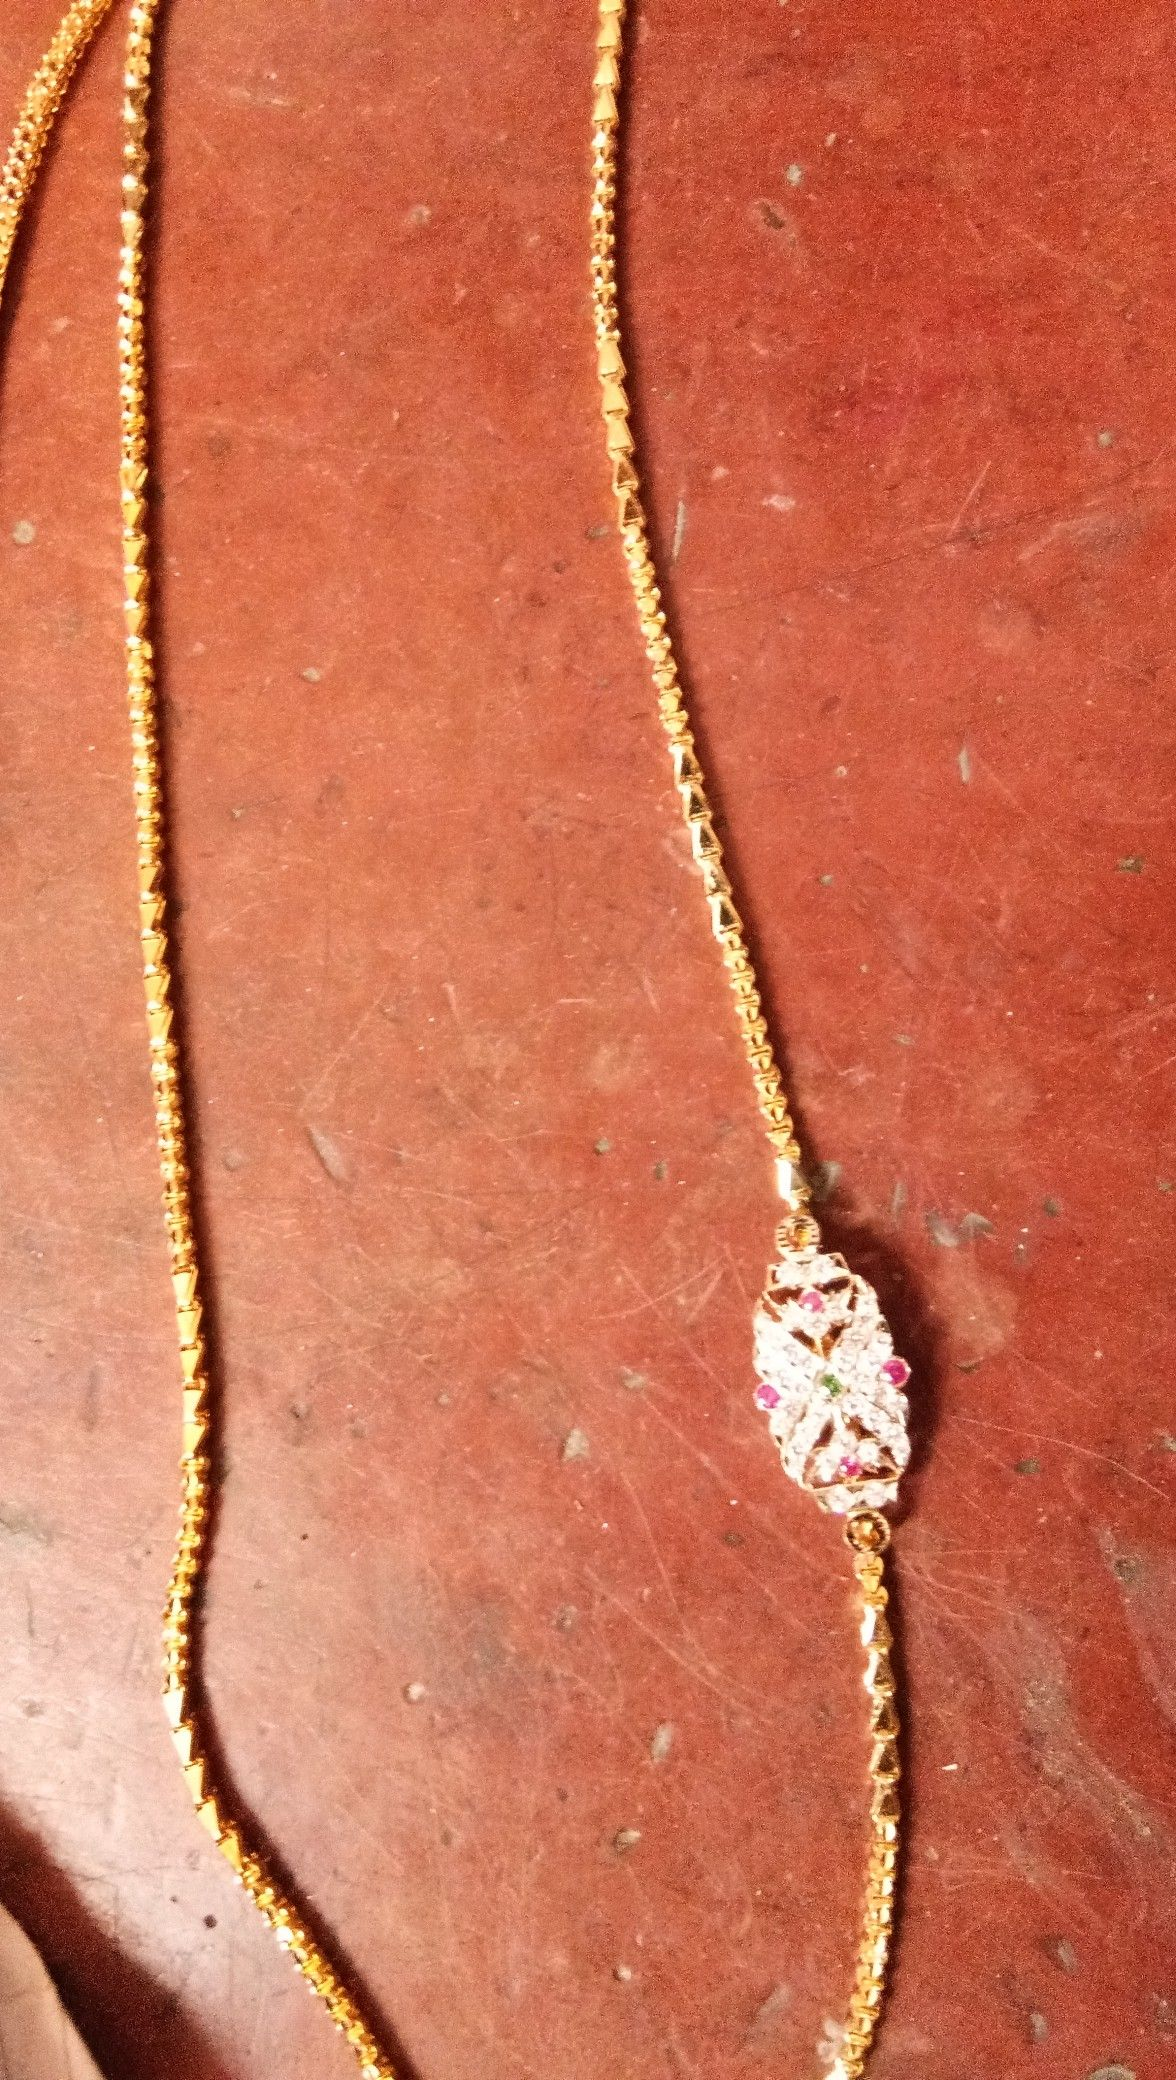 Chain with locket | Ravi gold | Pinterest | Chains and Gold